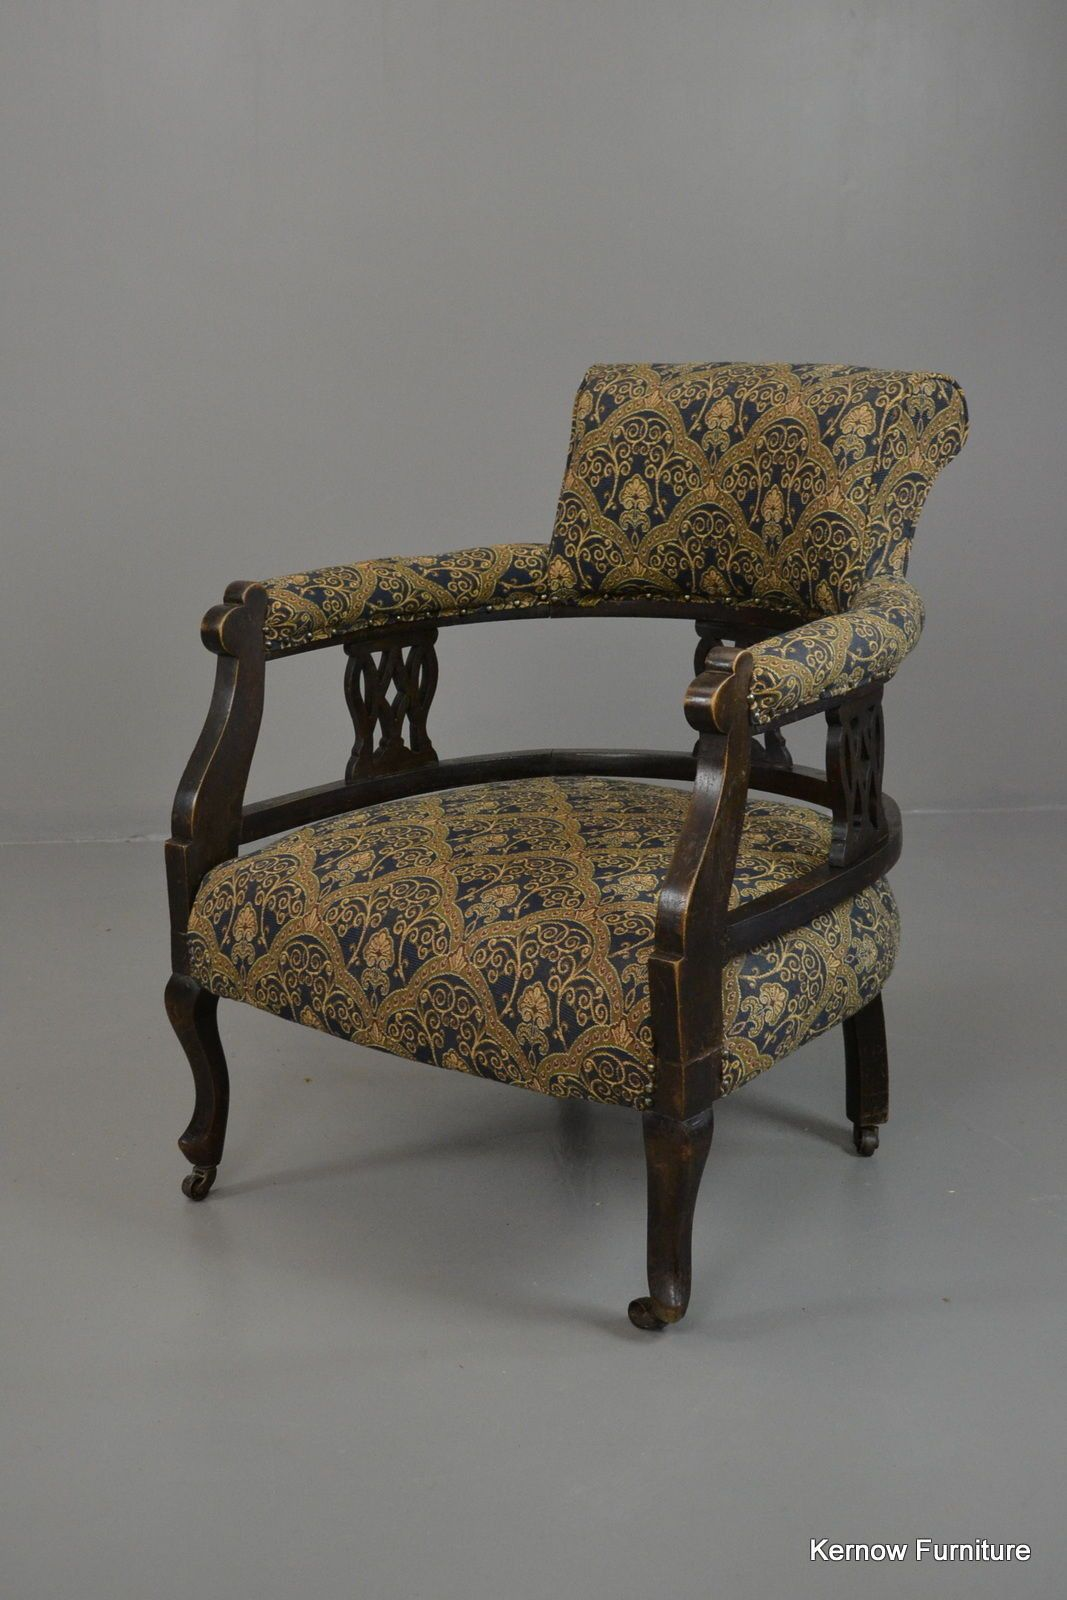 Antique Edwardian Small Armchair - Kernow Furniture Antique Chairs For  Sale, Vintage Chairs, Edwardian - Antique Edwardian Small Armchair - Kernow Furniture Edwardian